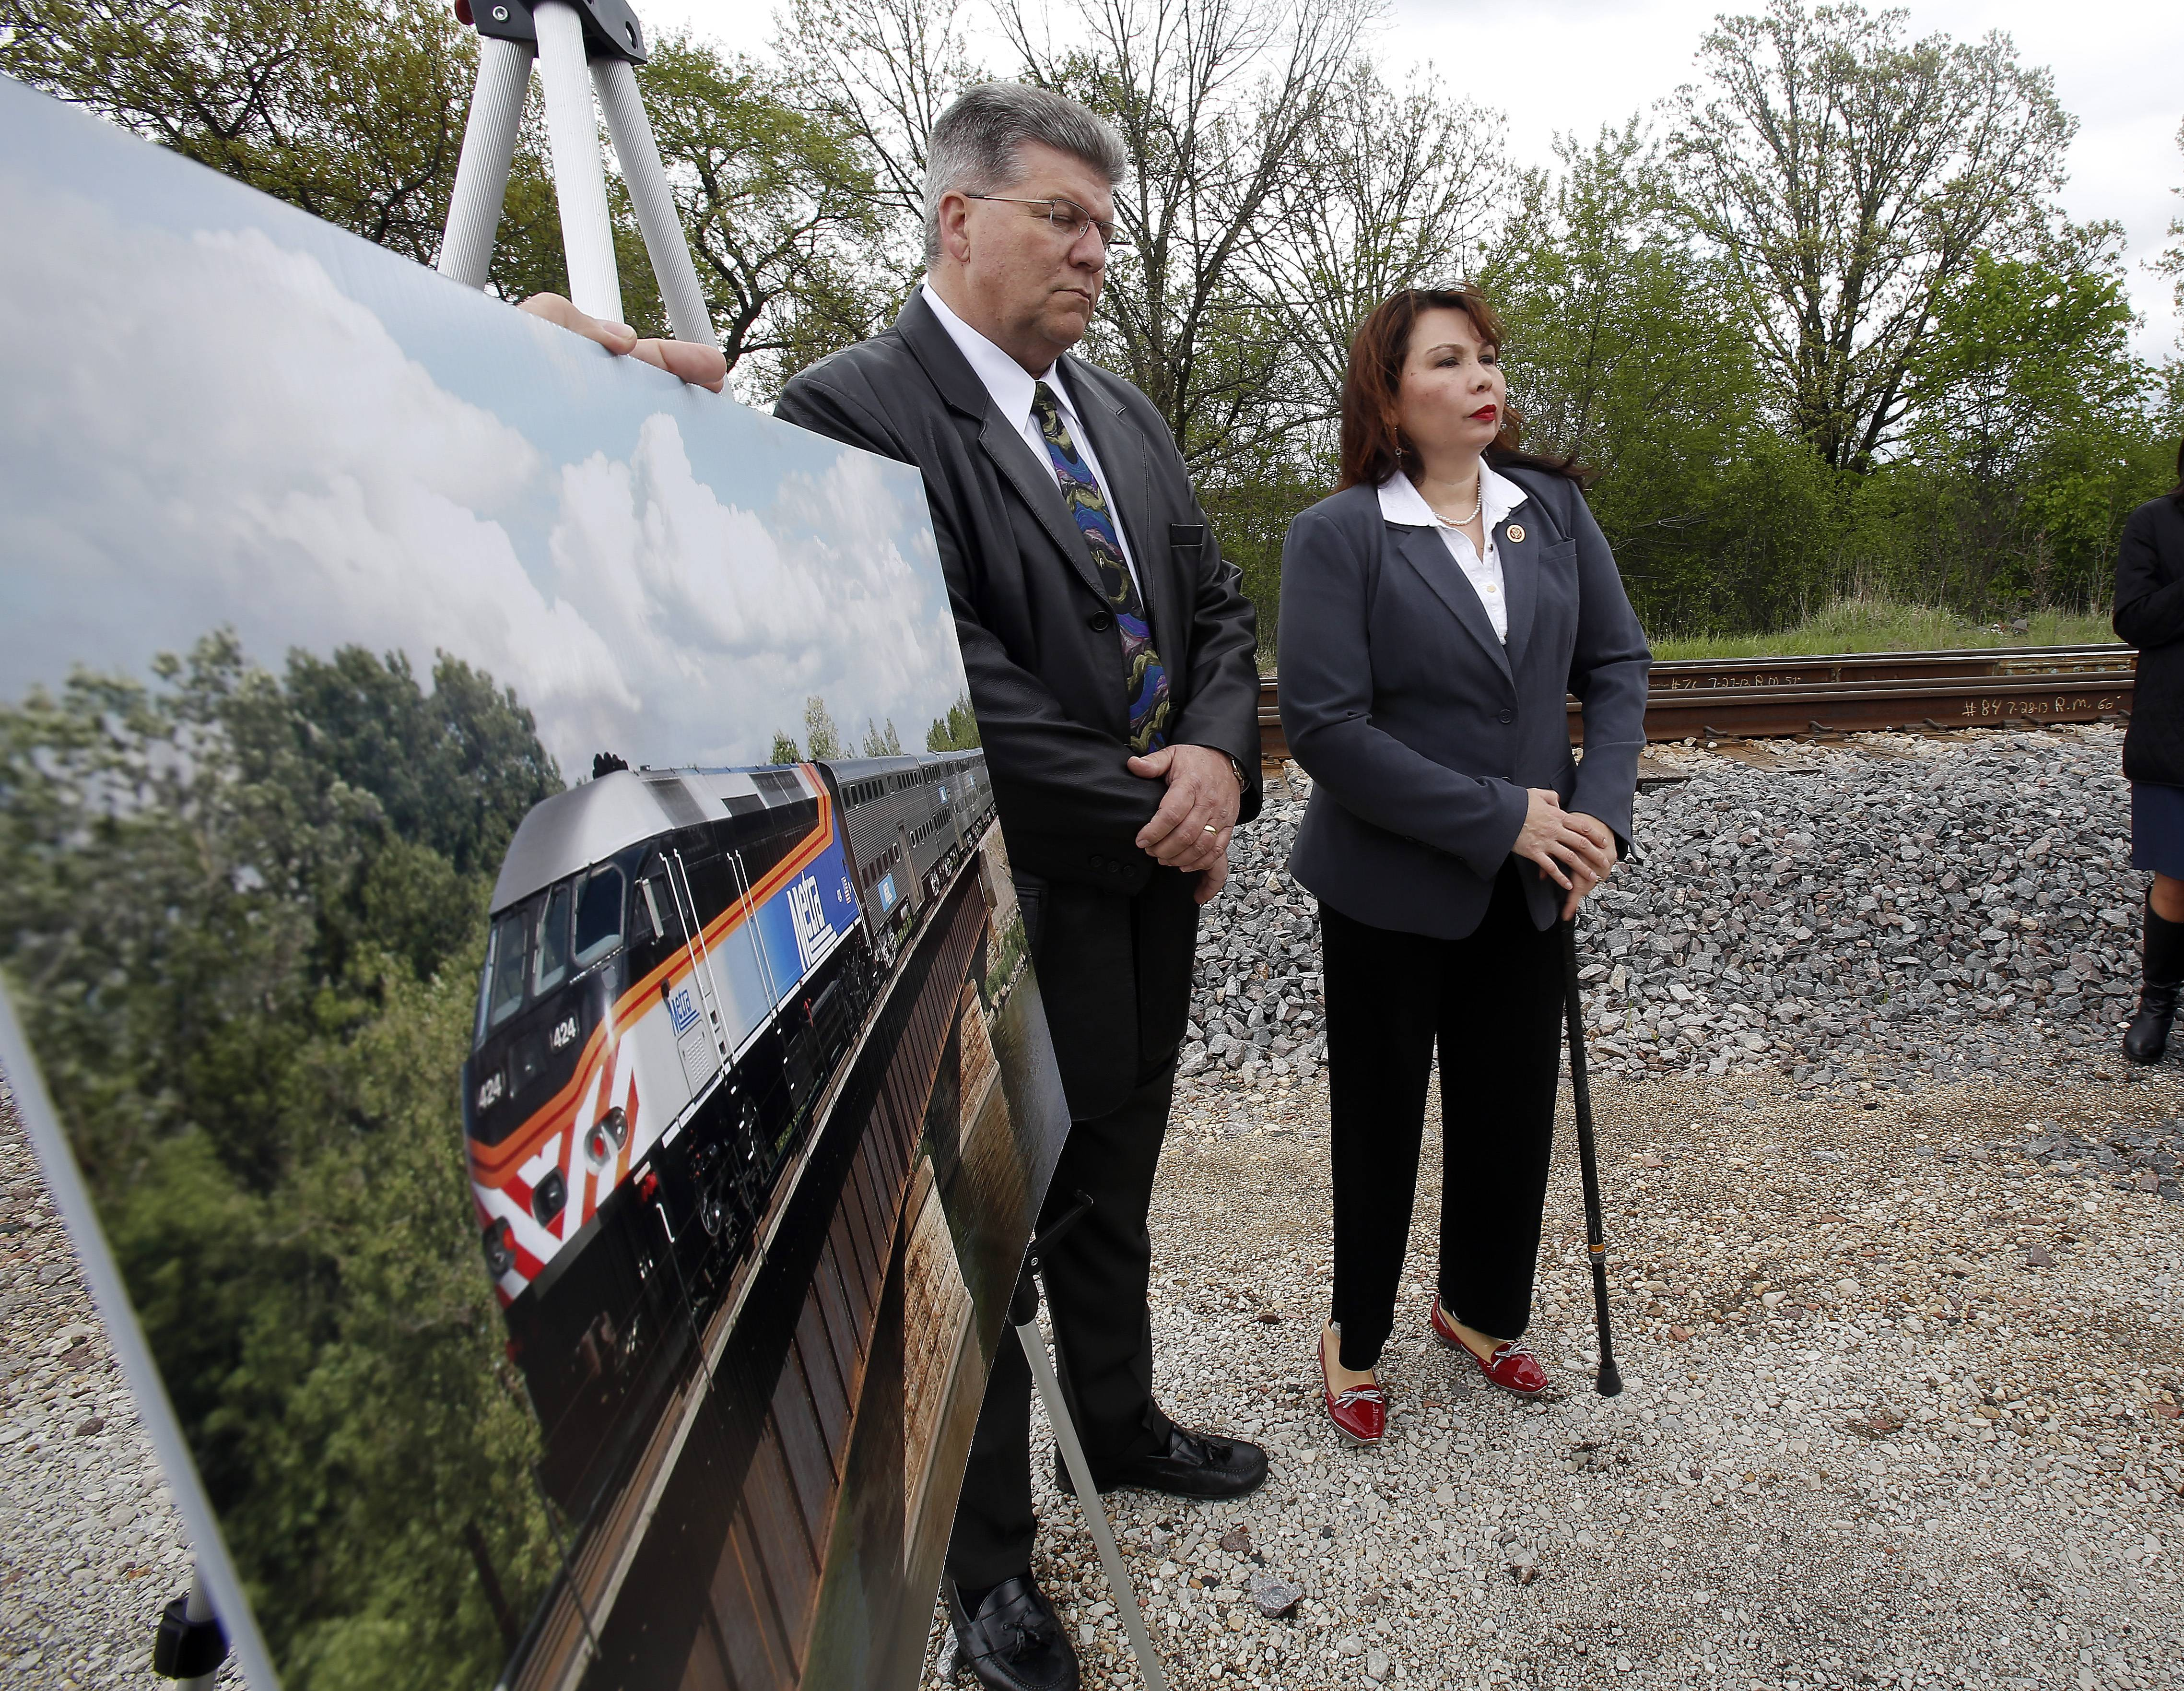 U.S. Rep. Tammy Duckworth and Bill Dorris, board chairman of the National Railroad Construction and Maintenance Association, said Thursday a Metra bridge over the Fox River in Elgin needs to be replaced. Having a single track means trains' schedules need to be coordinated and trains must slow down over the old bridge.